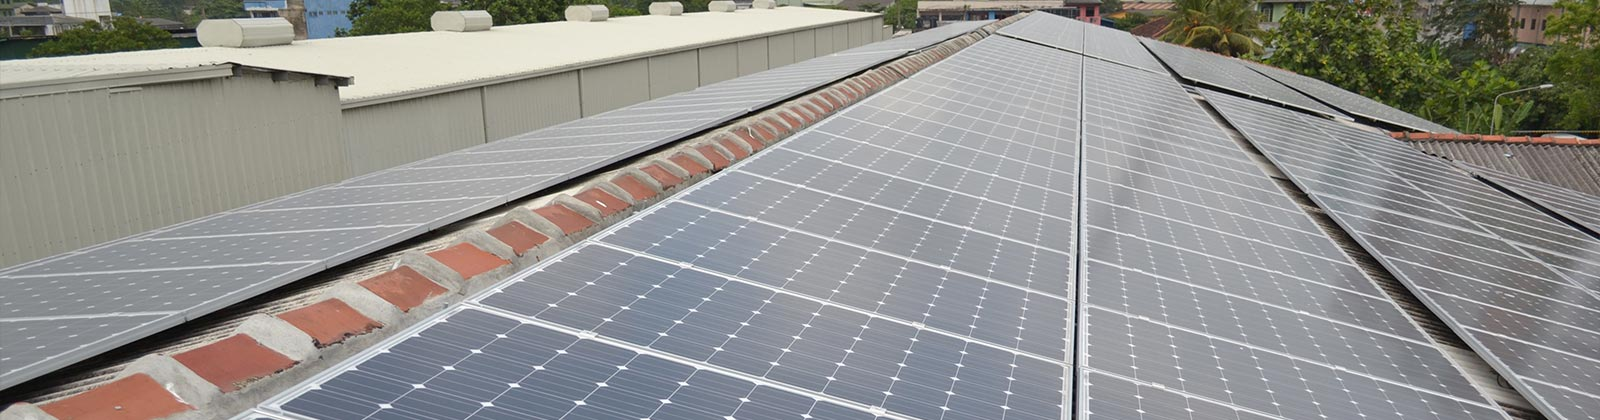 Solar Panels Fixed in Factory Roof